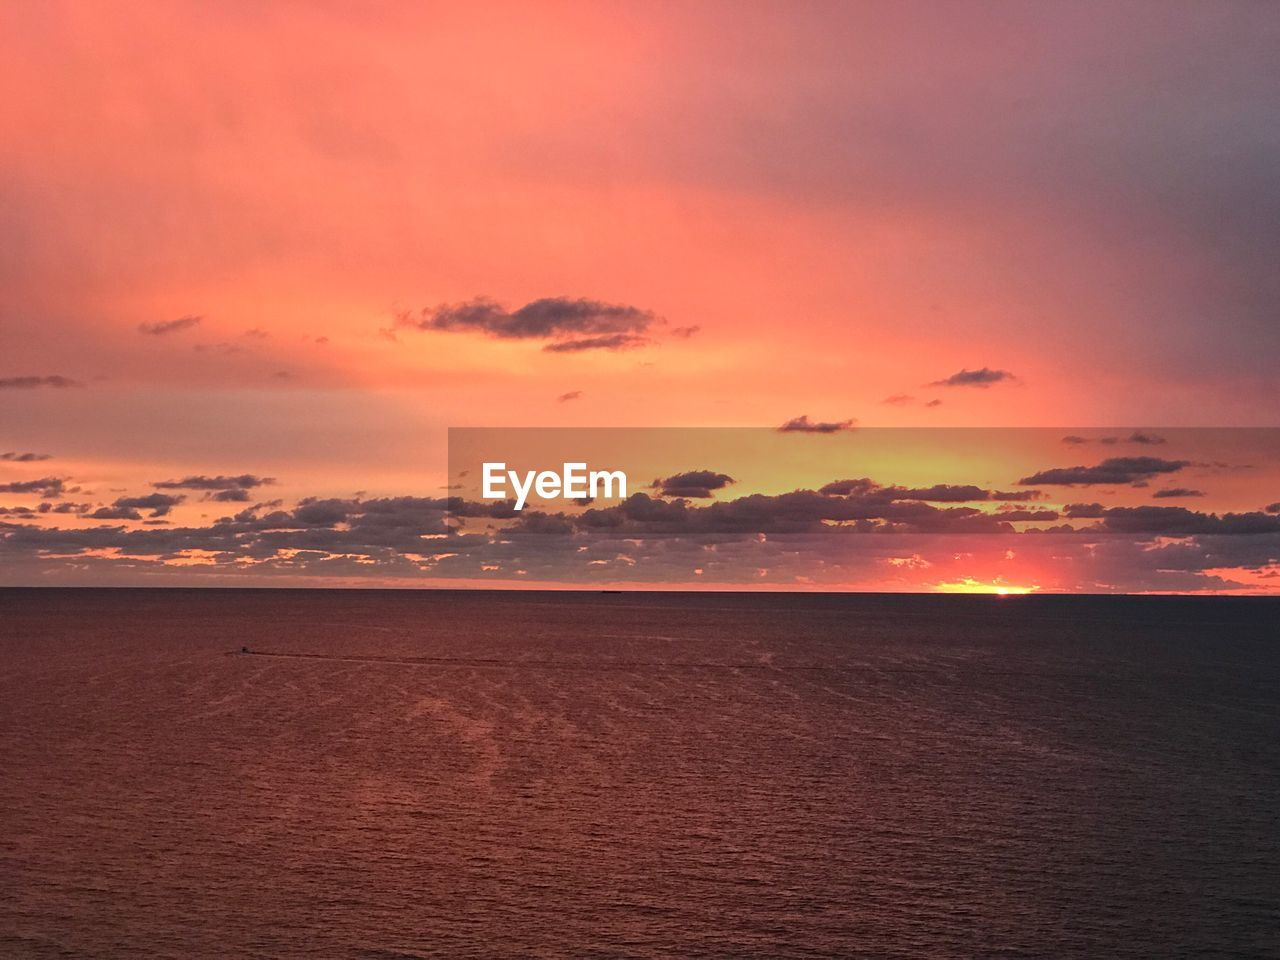 sunset, sky, beauty in nature, scenics - nature, tranquility, tranquil scene, cloud - sky, orange color, land, horizon, no people, water, sea, nature, idyllic, environment, non-urban scene, waterfront, horizon over water, outdoors, romantic sky